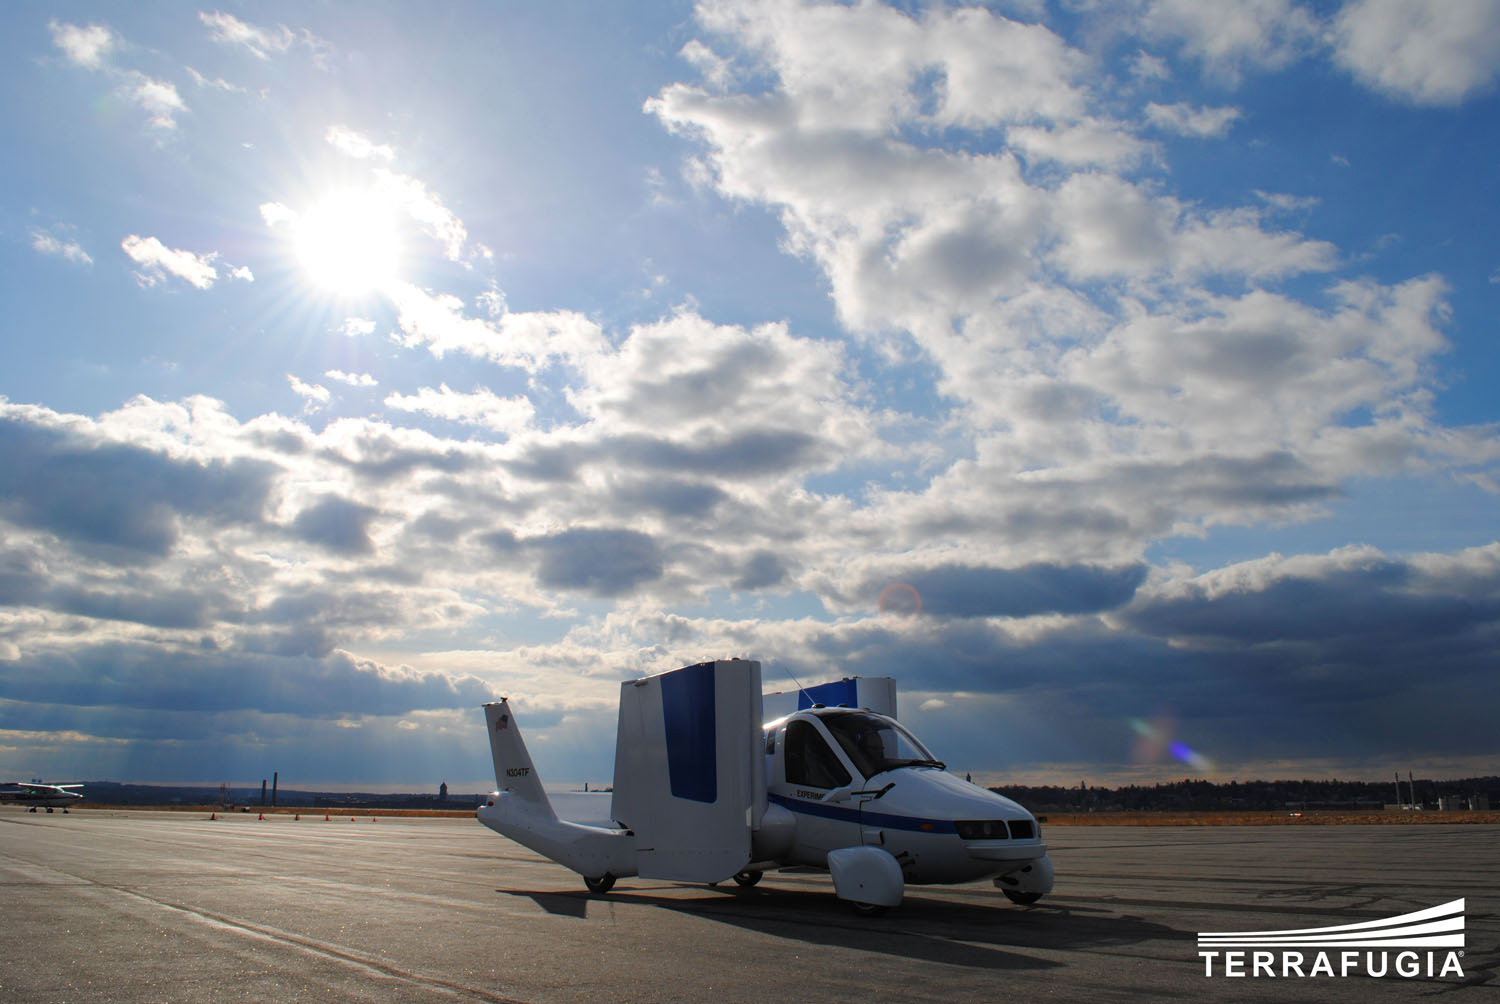 Terrafugia's Transition flying car